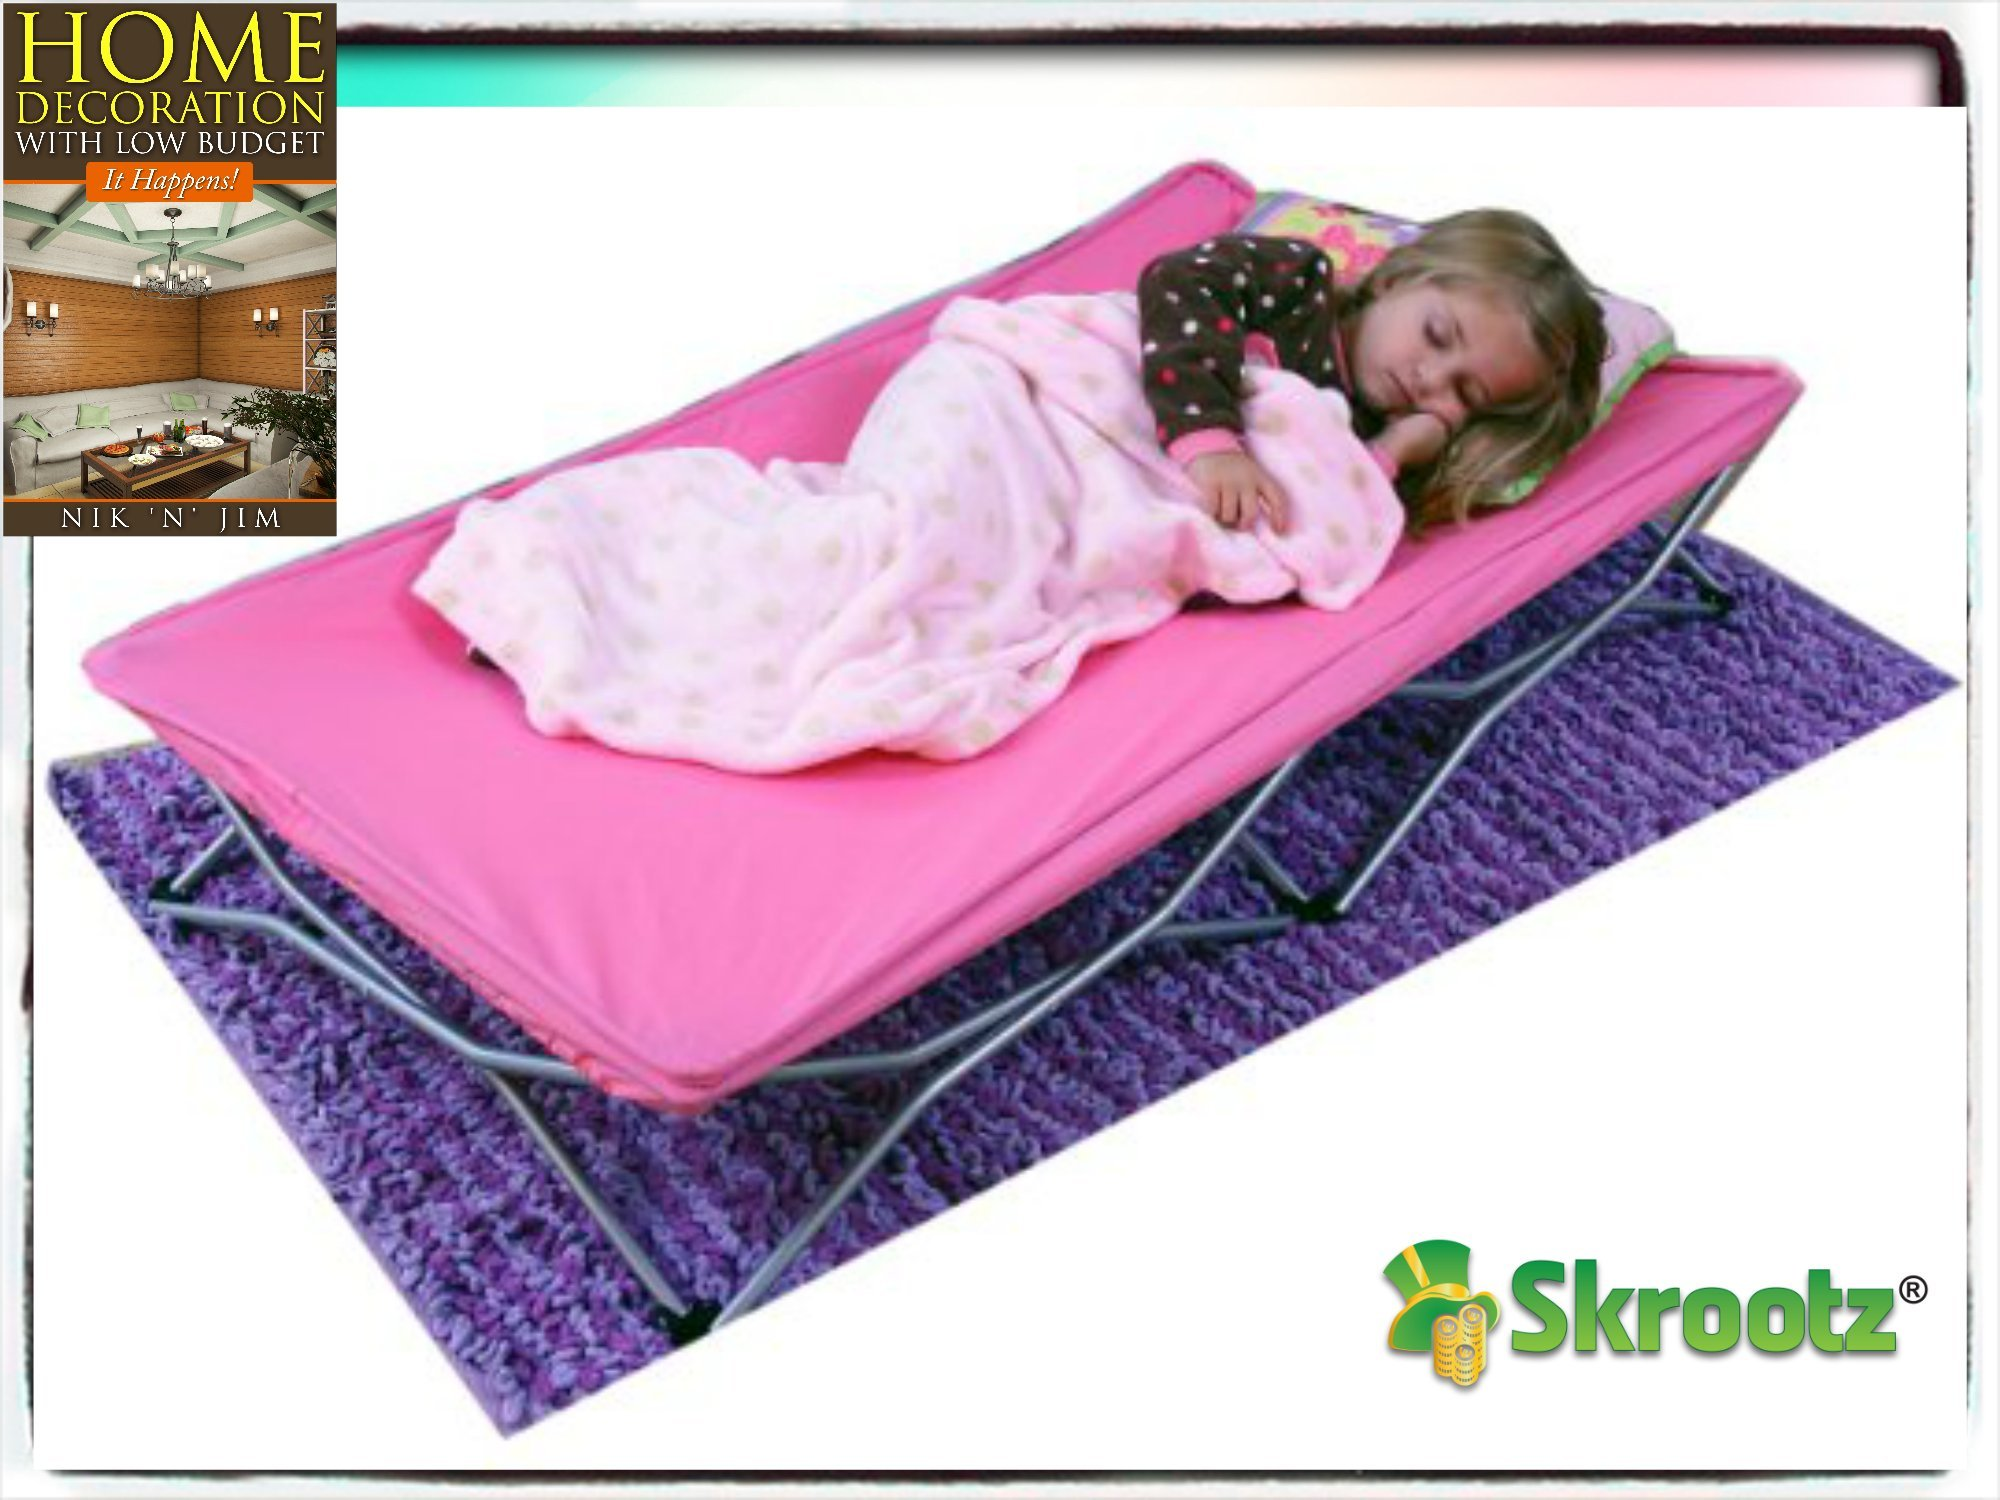 Portable Toddler Bed Cot Travel Kids Camping Folding New Baby Child Regalo Pink New Guarantee by Skroutz - It Comes Only with Skroutz Unique Ebook by Skroutz